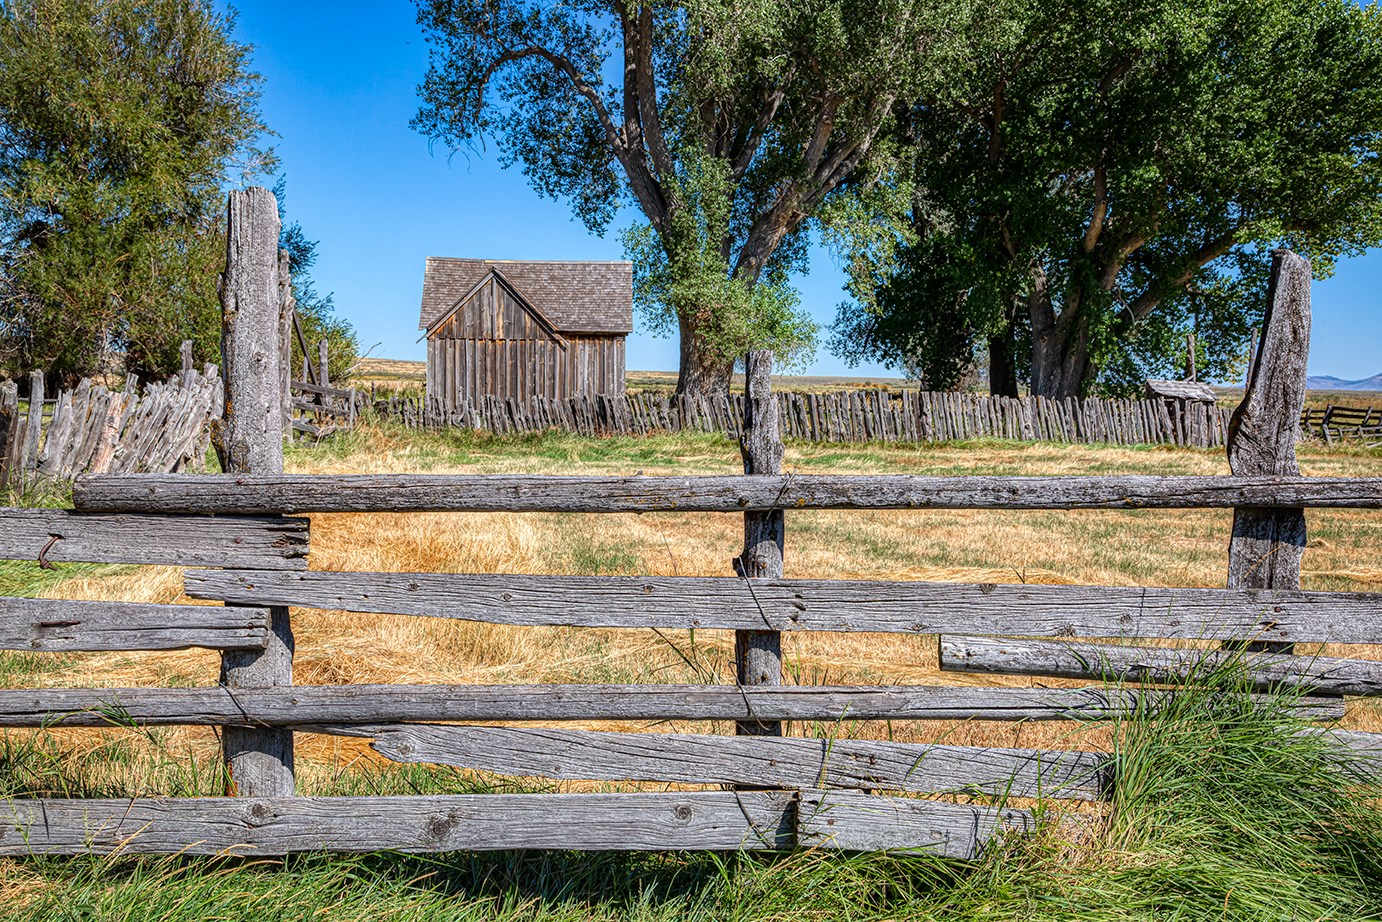 Sodhouse Ranch. Historic building in the distance framed by very large old cottonwood trees. Old split raid fence in the foreground.